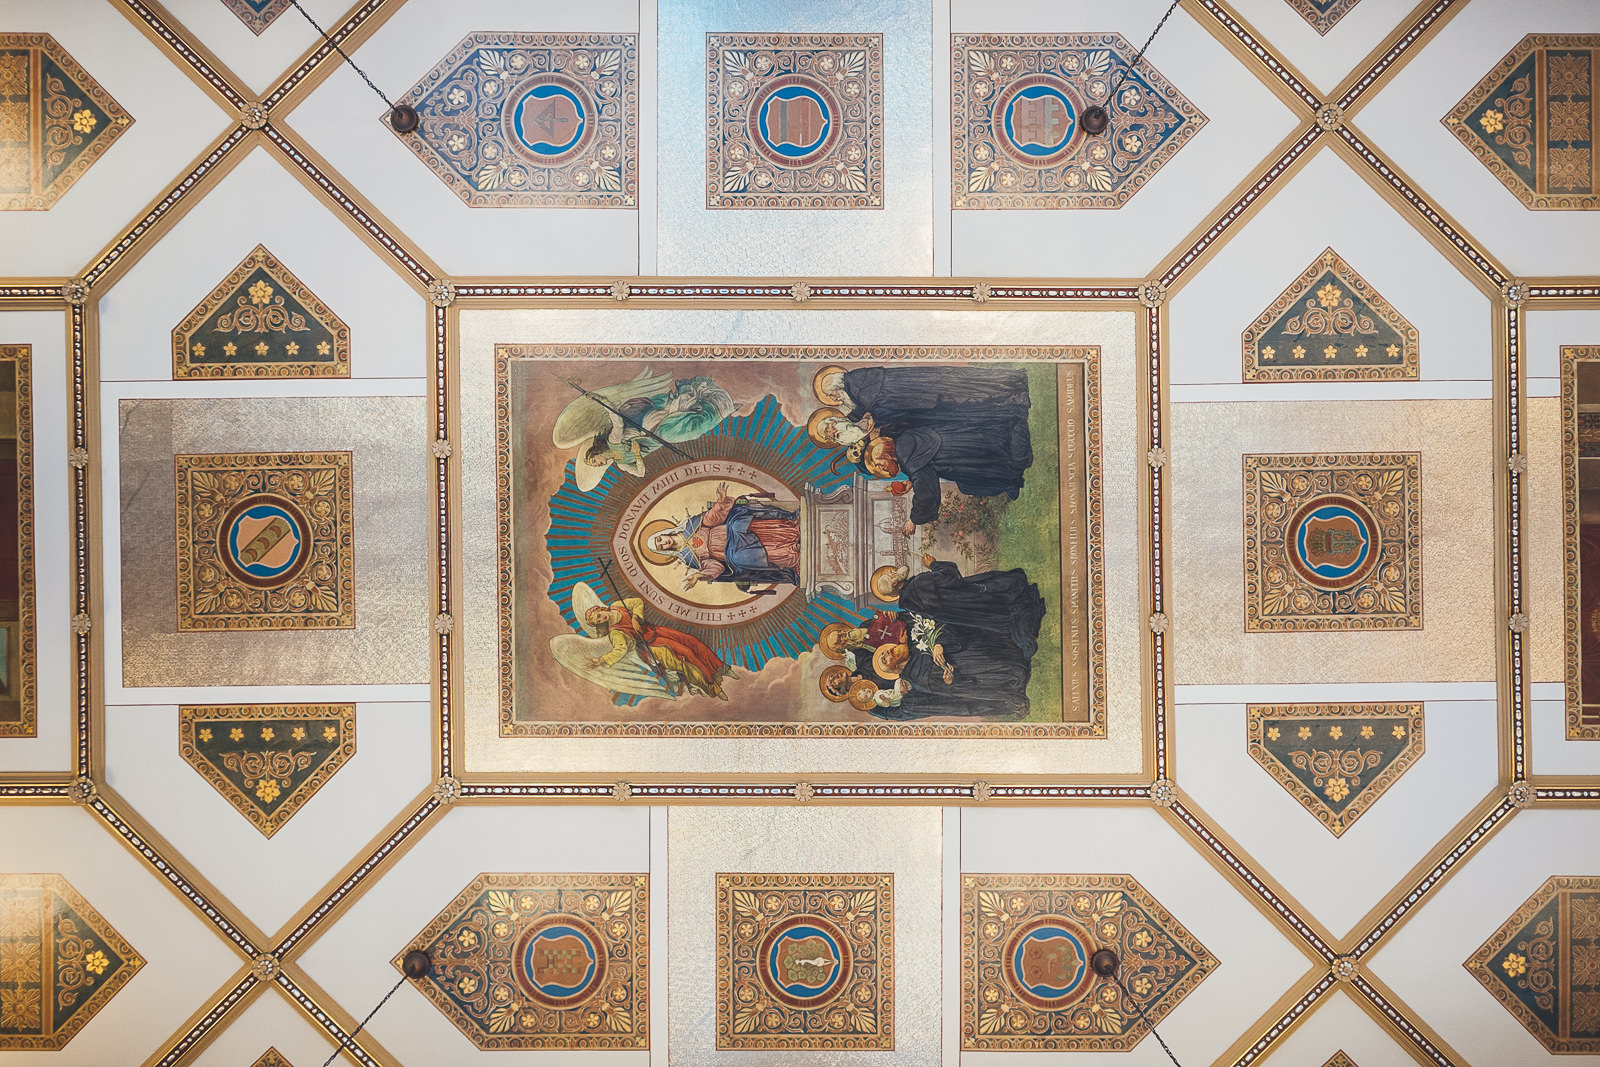 23 church ceiling in chicago